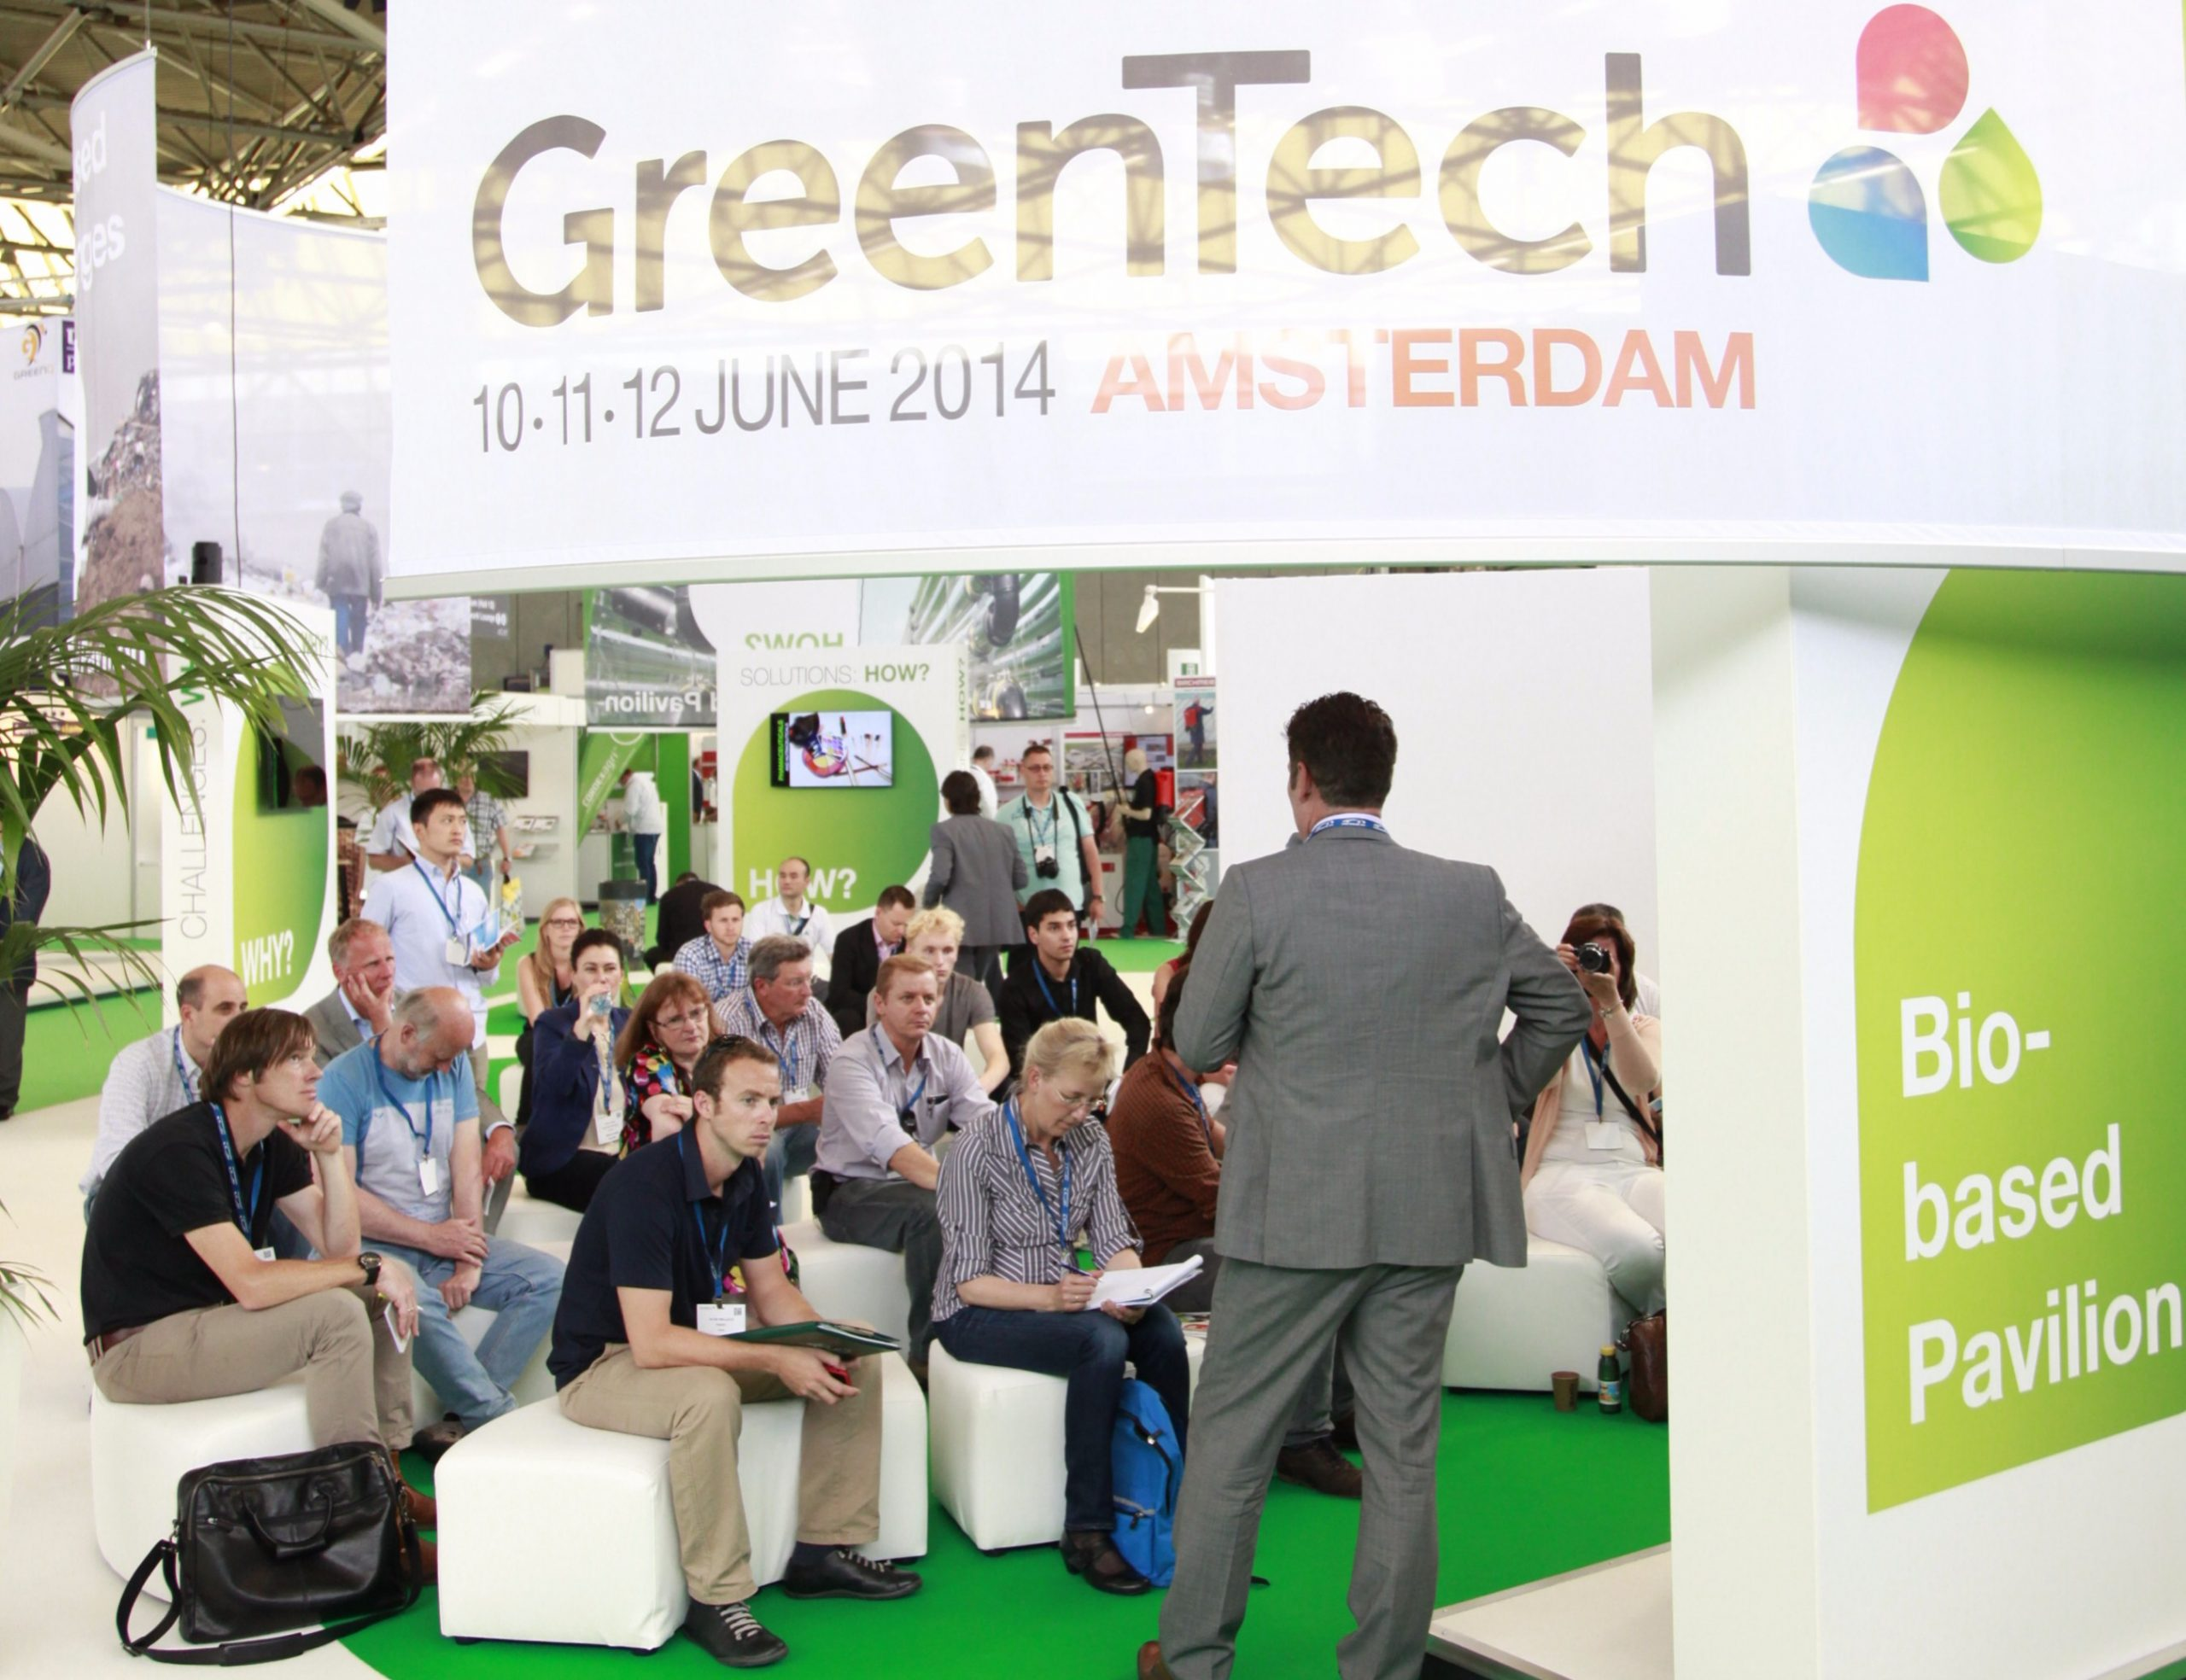 GreenTech is the global meeting place for all professionals involved in horticulture technology in RAI Amsterdam, the Netherlands.